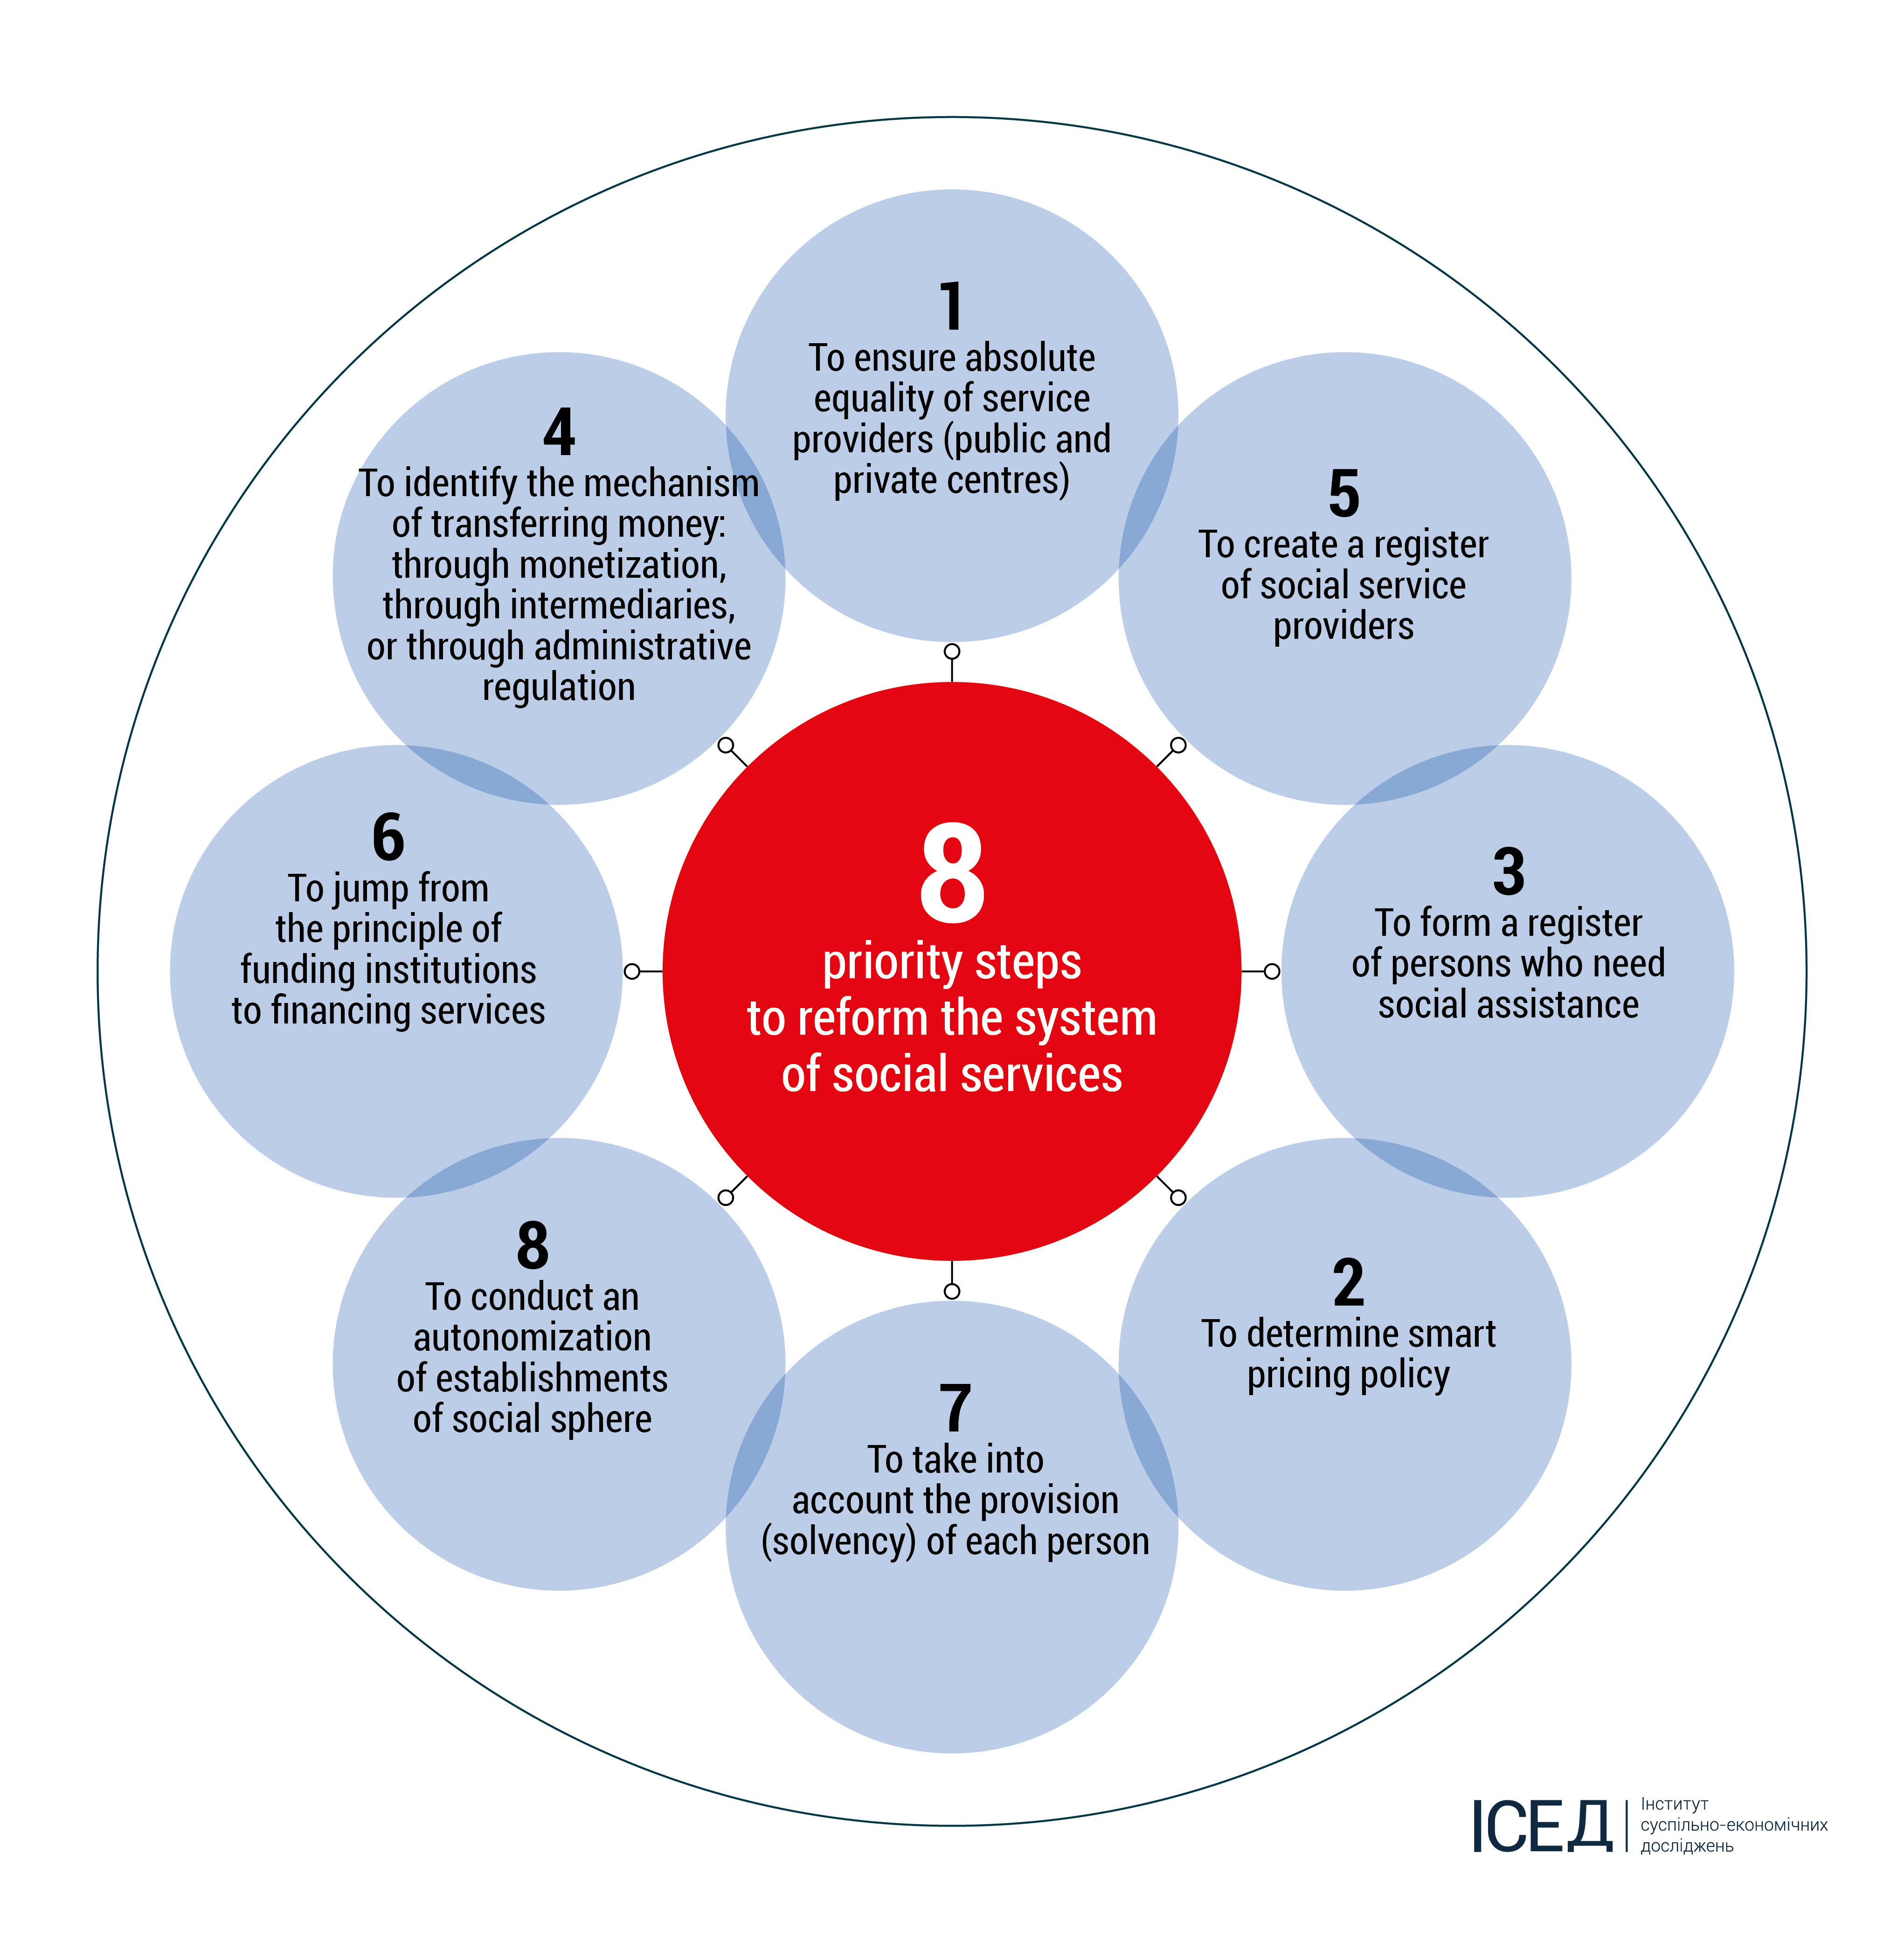 Reform Of The System Of Social Services 8 Priority Steps State